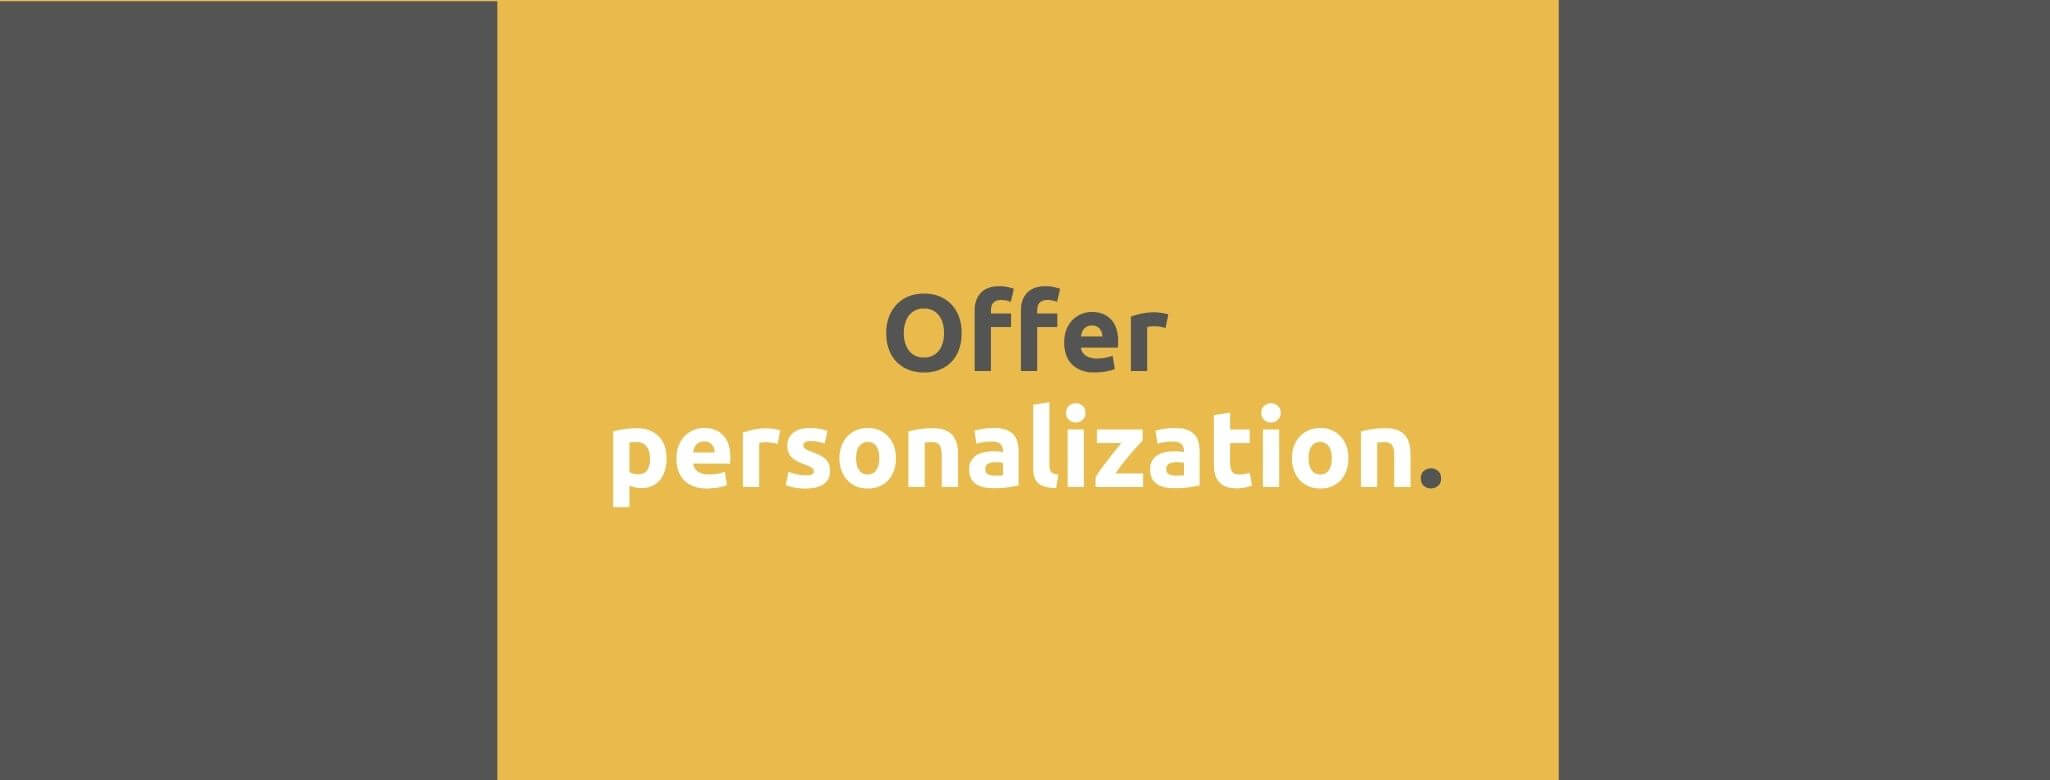 Offer personalization - Customer Expectations - Replyco Helpdesk Software for eCommerce